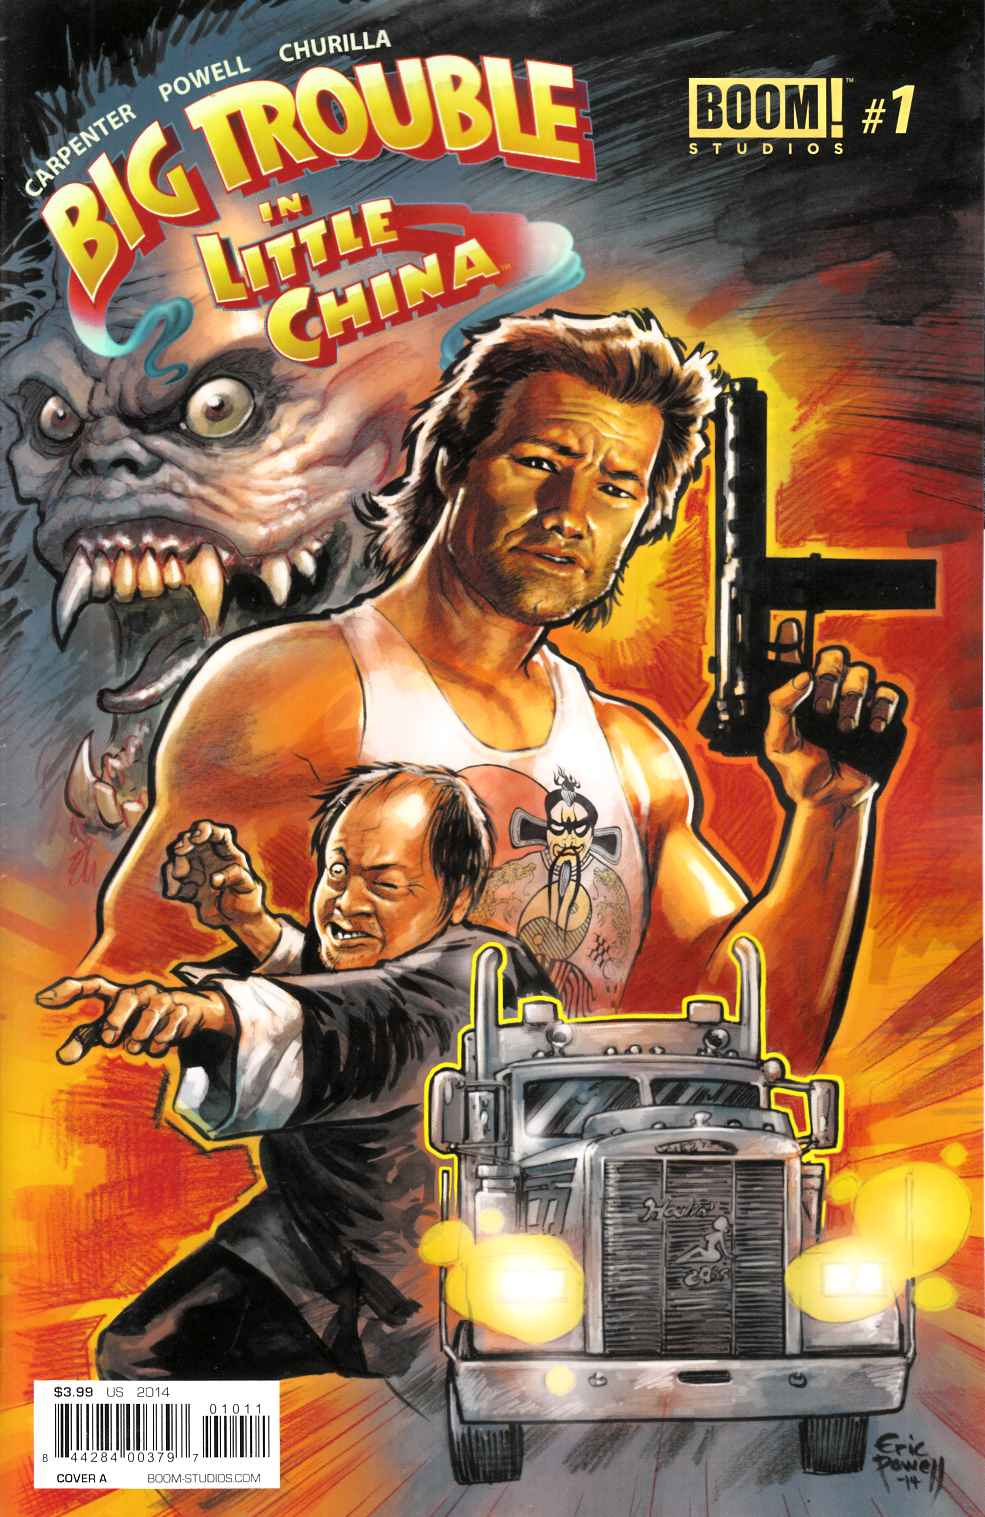 Big Trouble in Little China #1 Cover A- Powell [Comic]